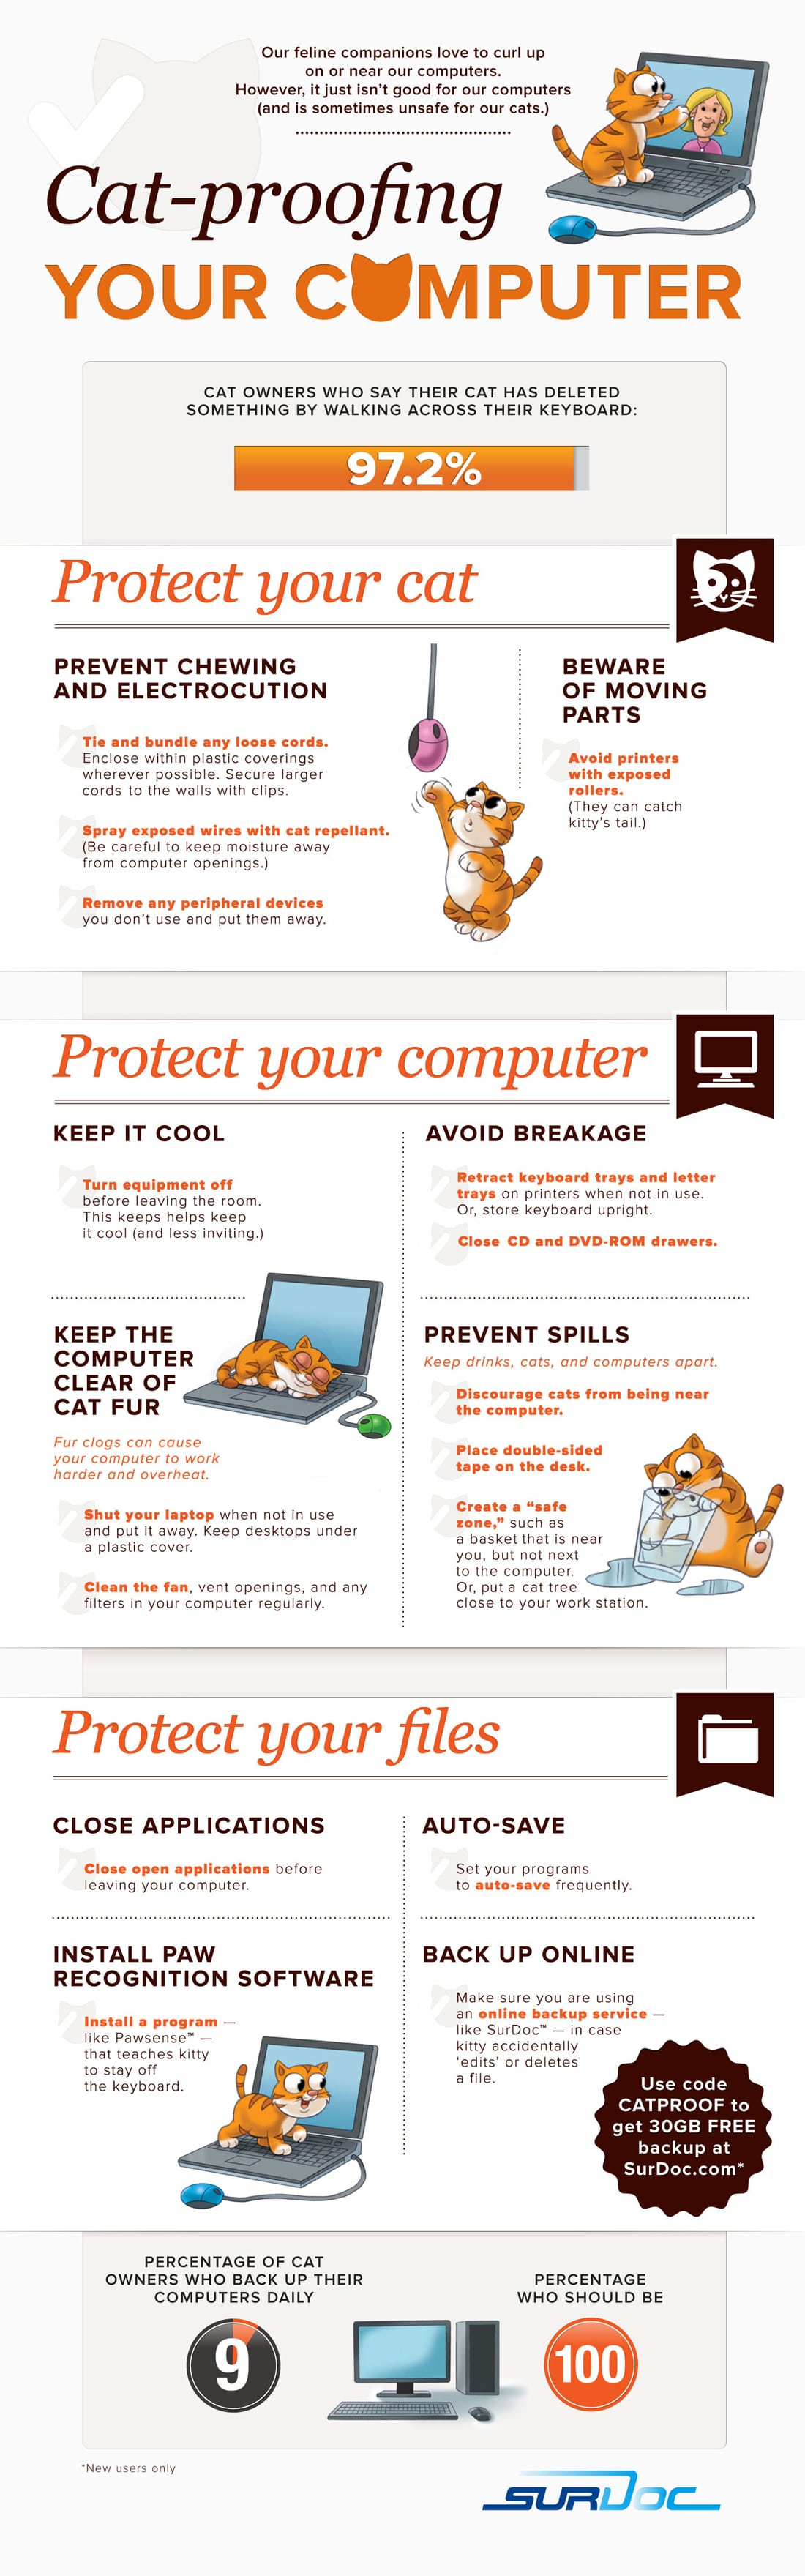 How To Cat-Proof Your Computer [Infographic]